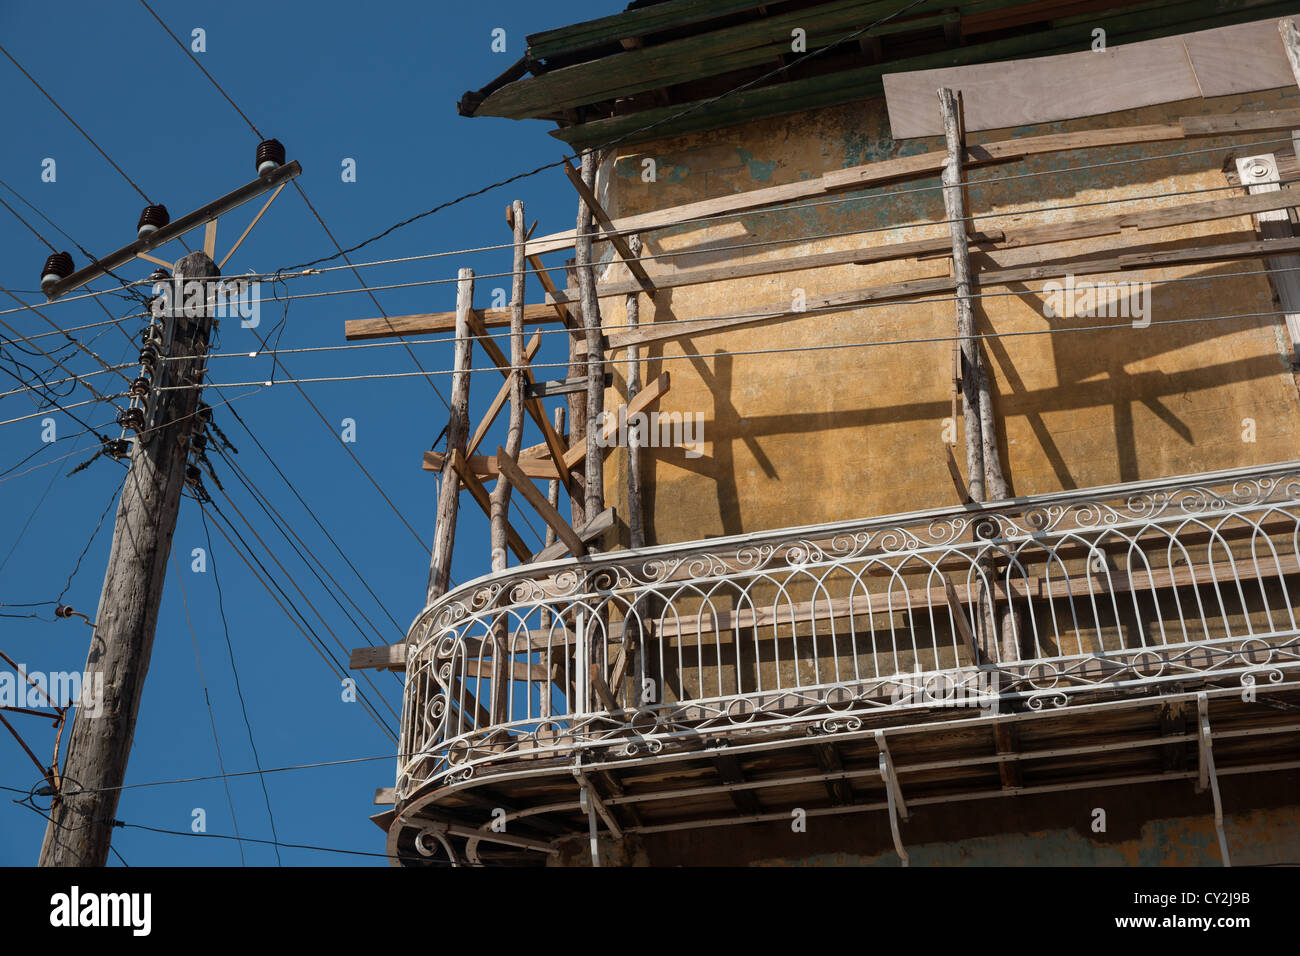 Rustic Cuban building under repair veranda and scaffolding near overheadpower pole and lines. - Stock Image